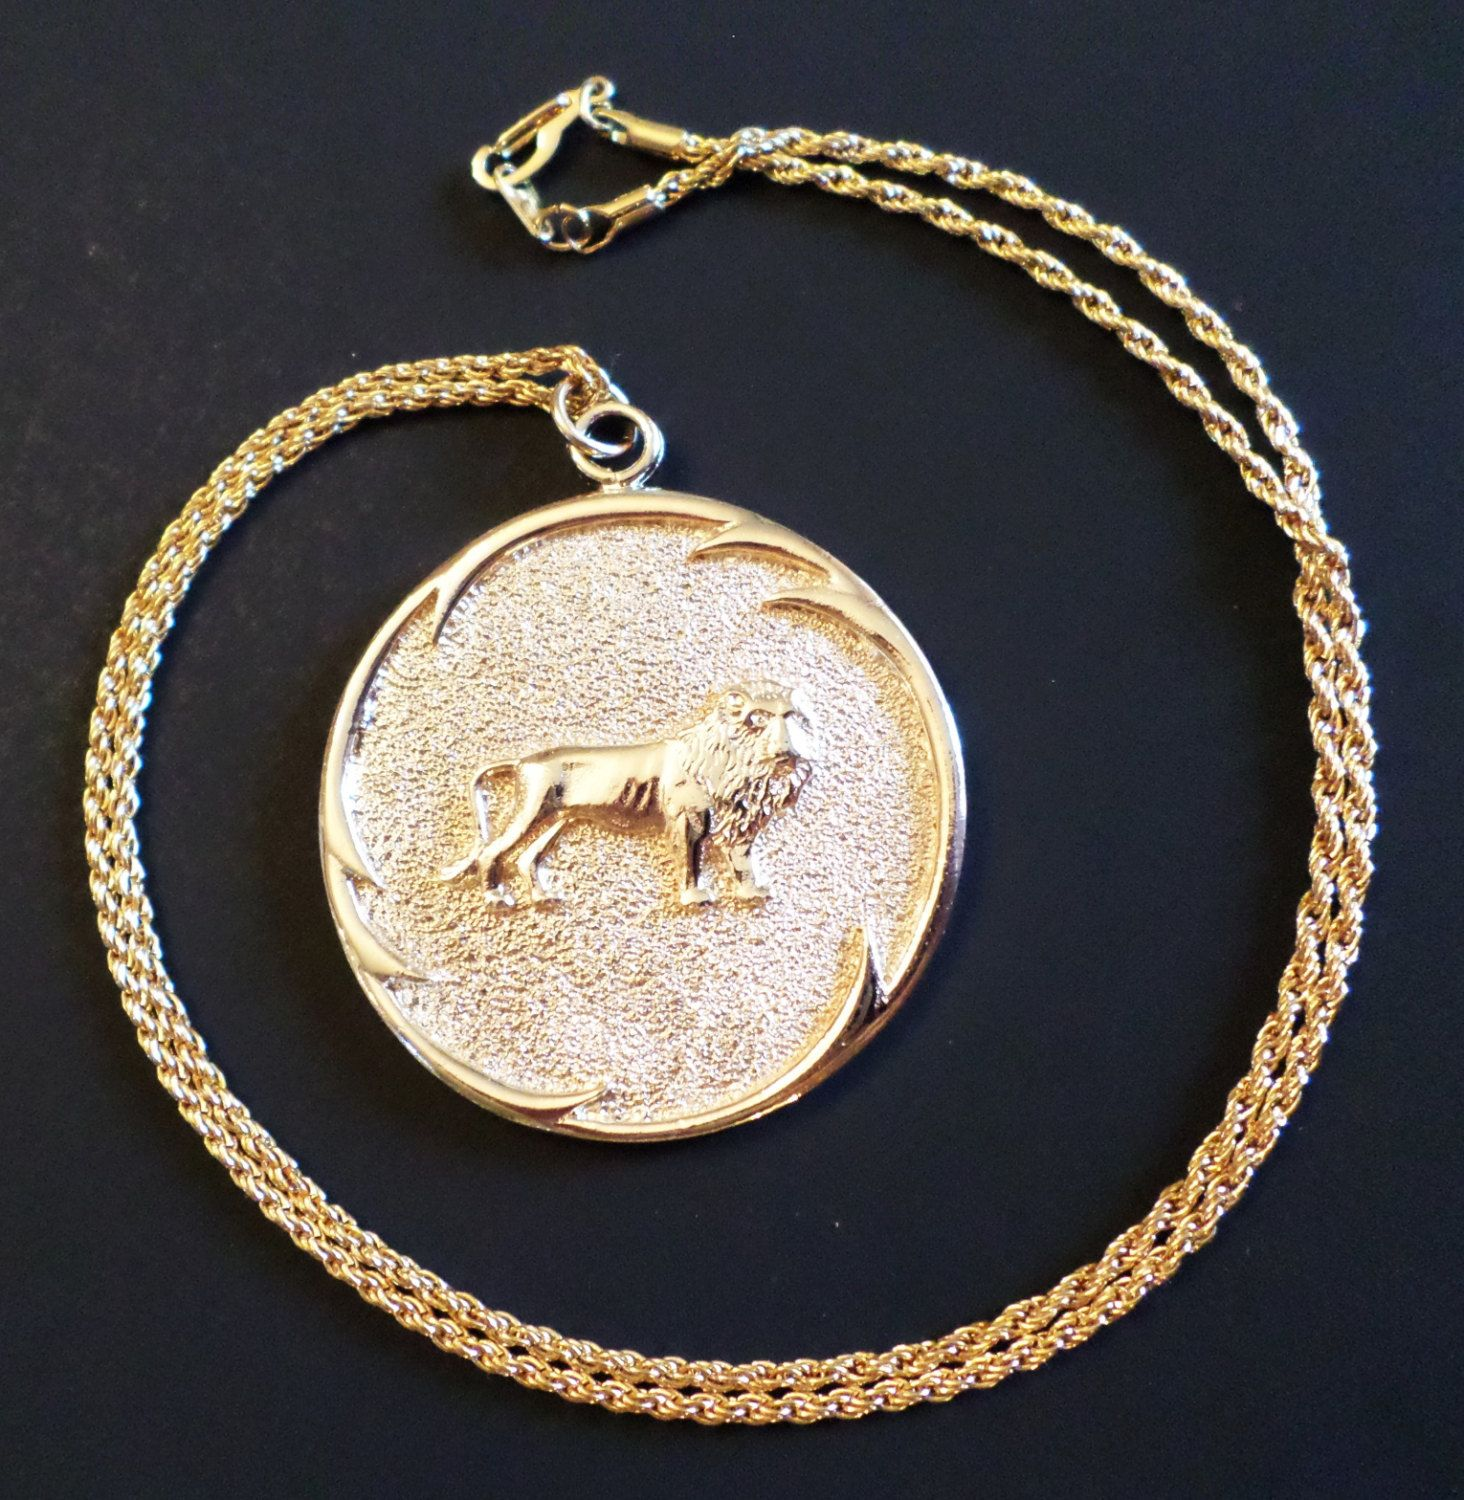 chanel medallion necklaces brass gold en large tone plated lion lxrandco necklace on us